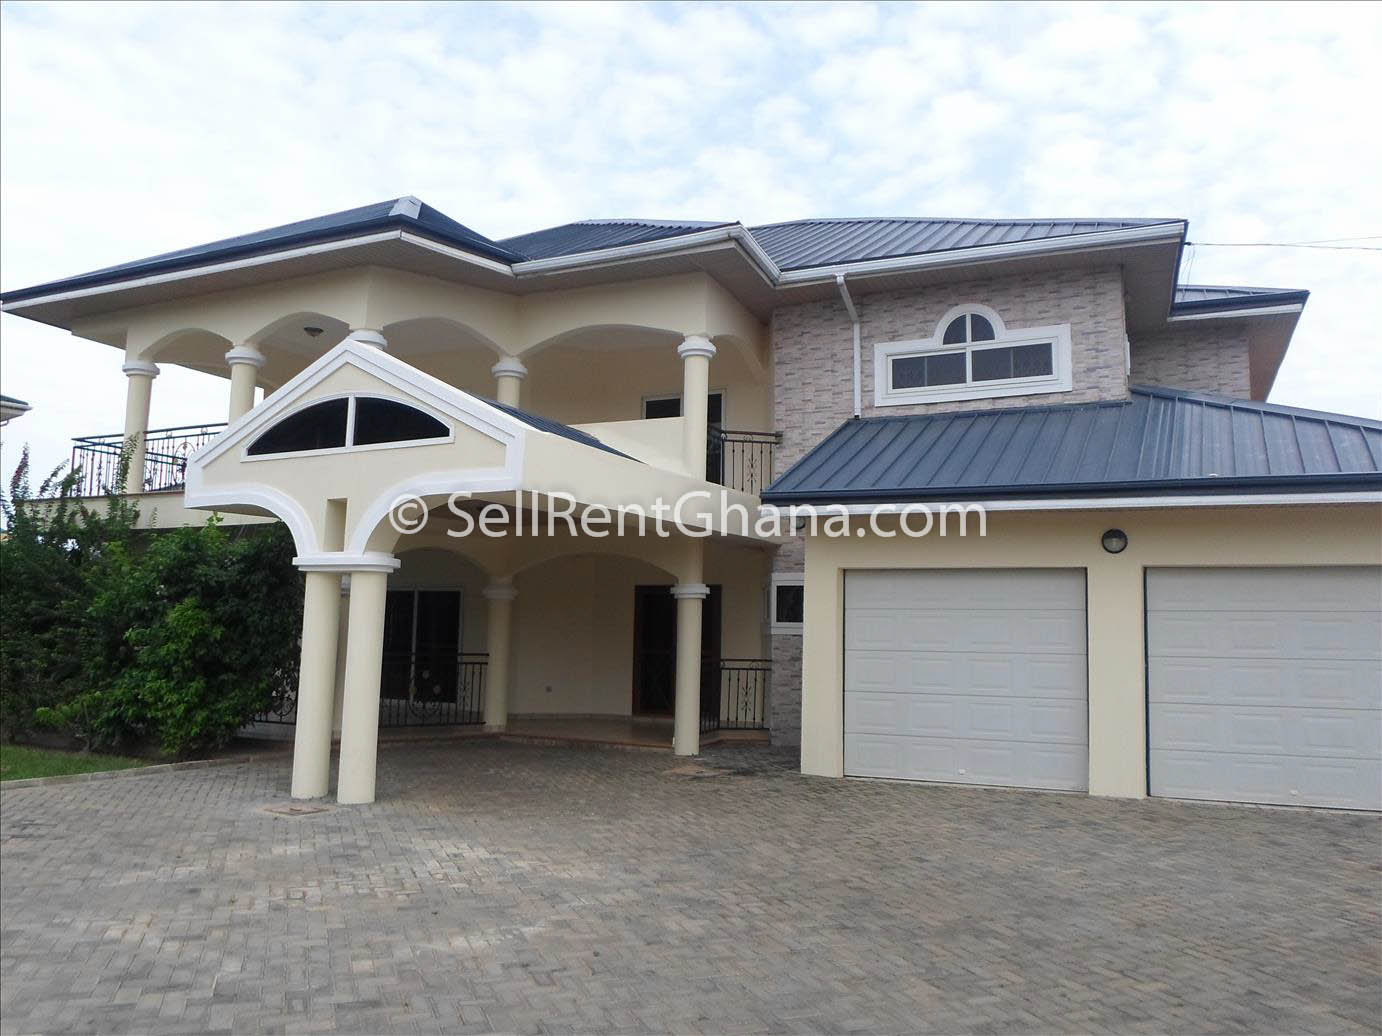 5 Bedroom House For Rent Interesting 5 Bedroom House For Rent In Labone  Sellrent Ghana Inspiration